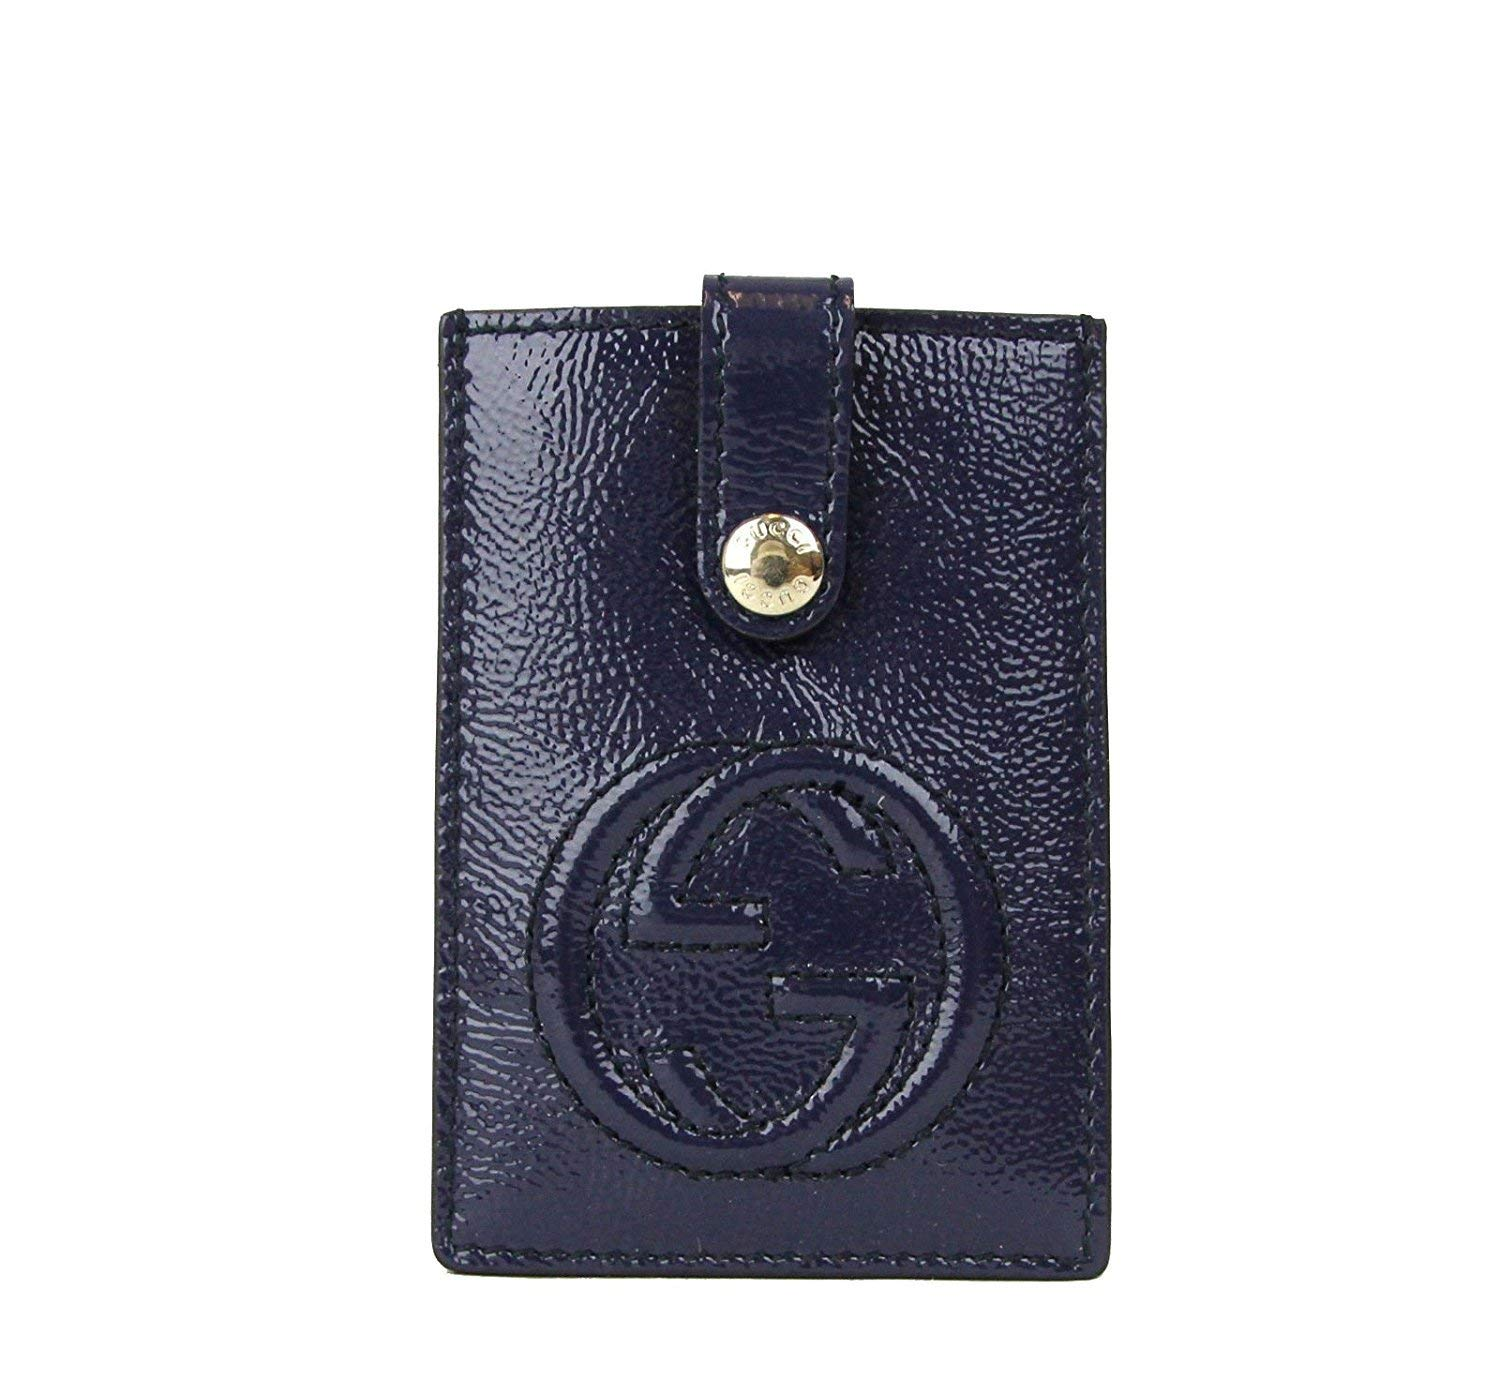 Gucci Women's Soho Blue Patent Leather Card Case Pouch 338331 4233 by Gucci (Image #1)